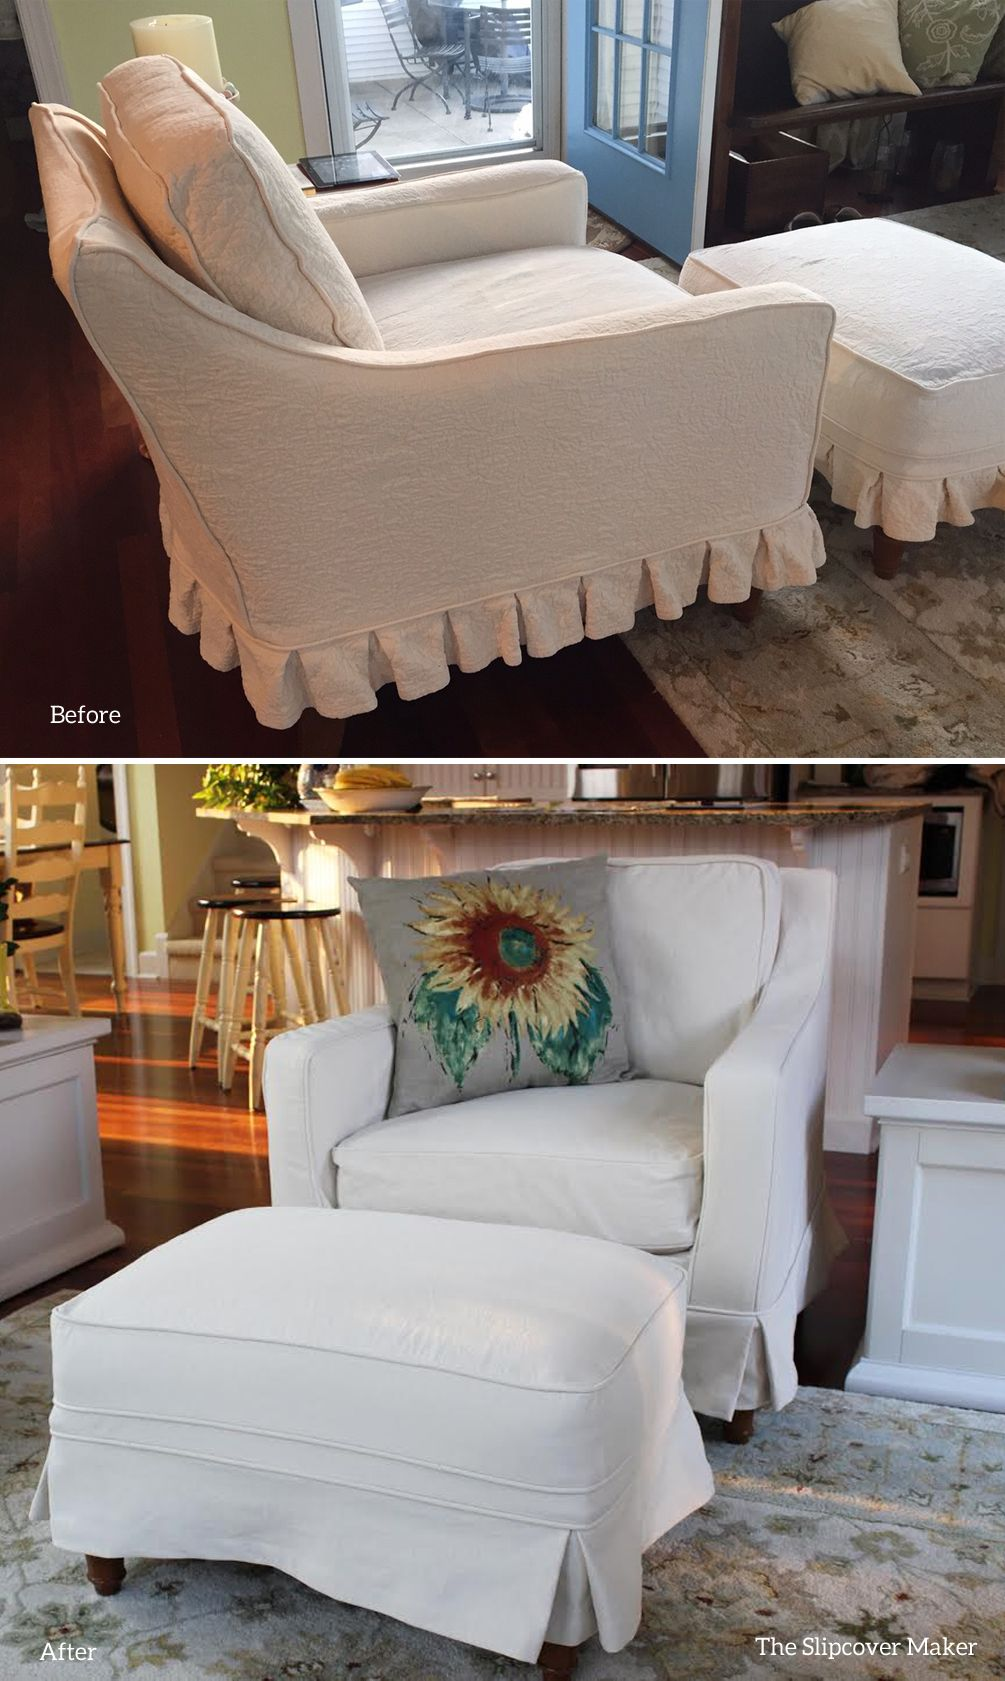 Old matelasse chair and ottoman covers used as a pattern to make these new natural denim slipcovers